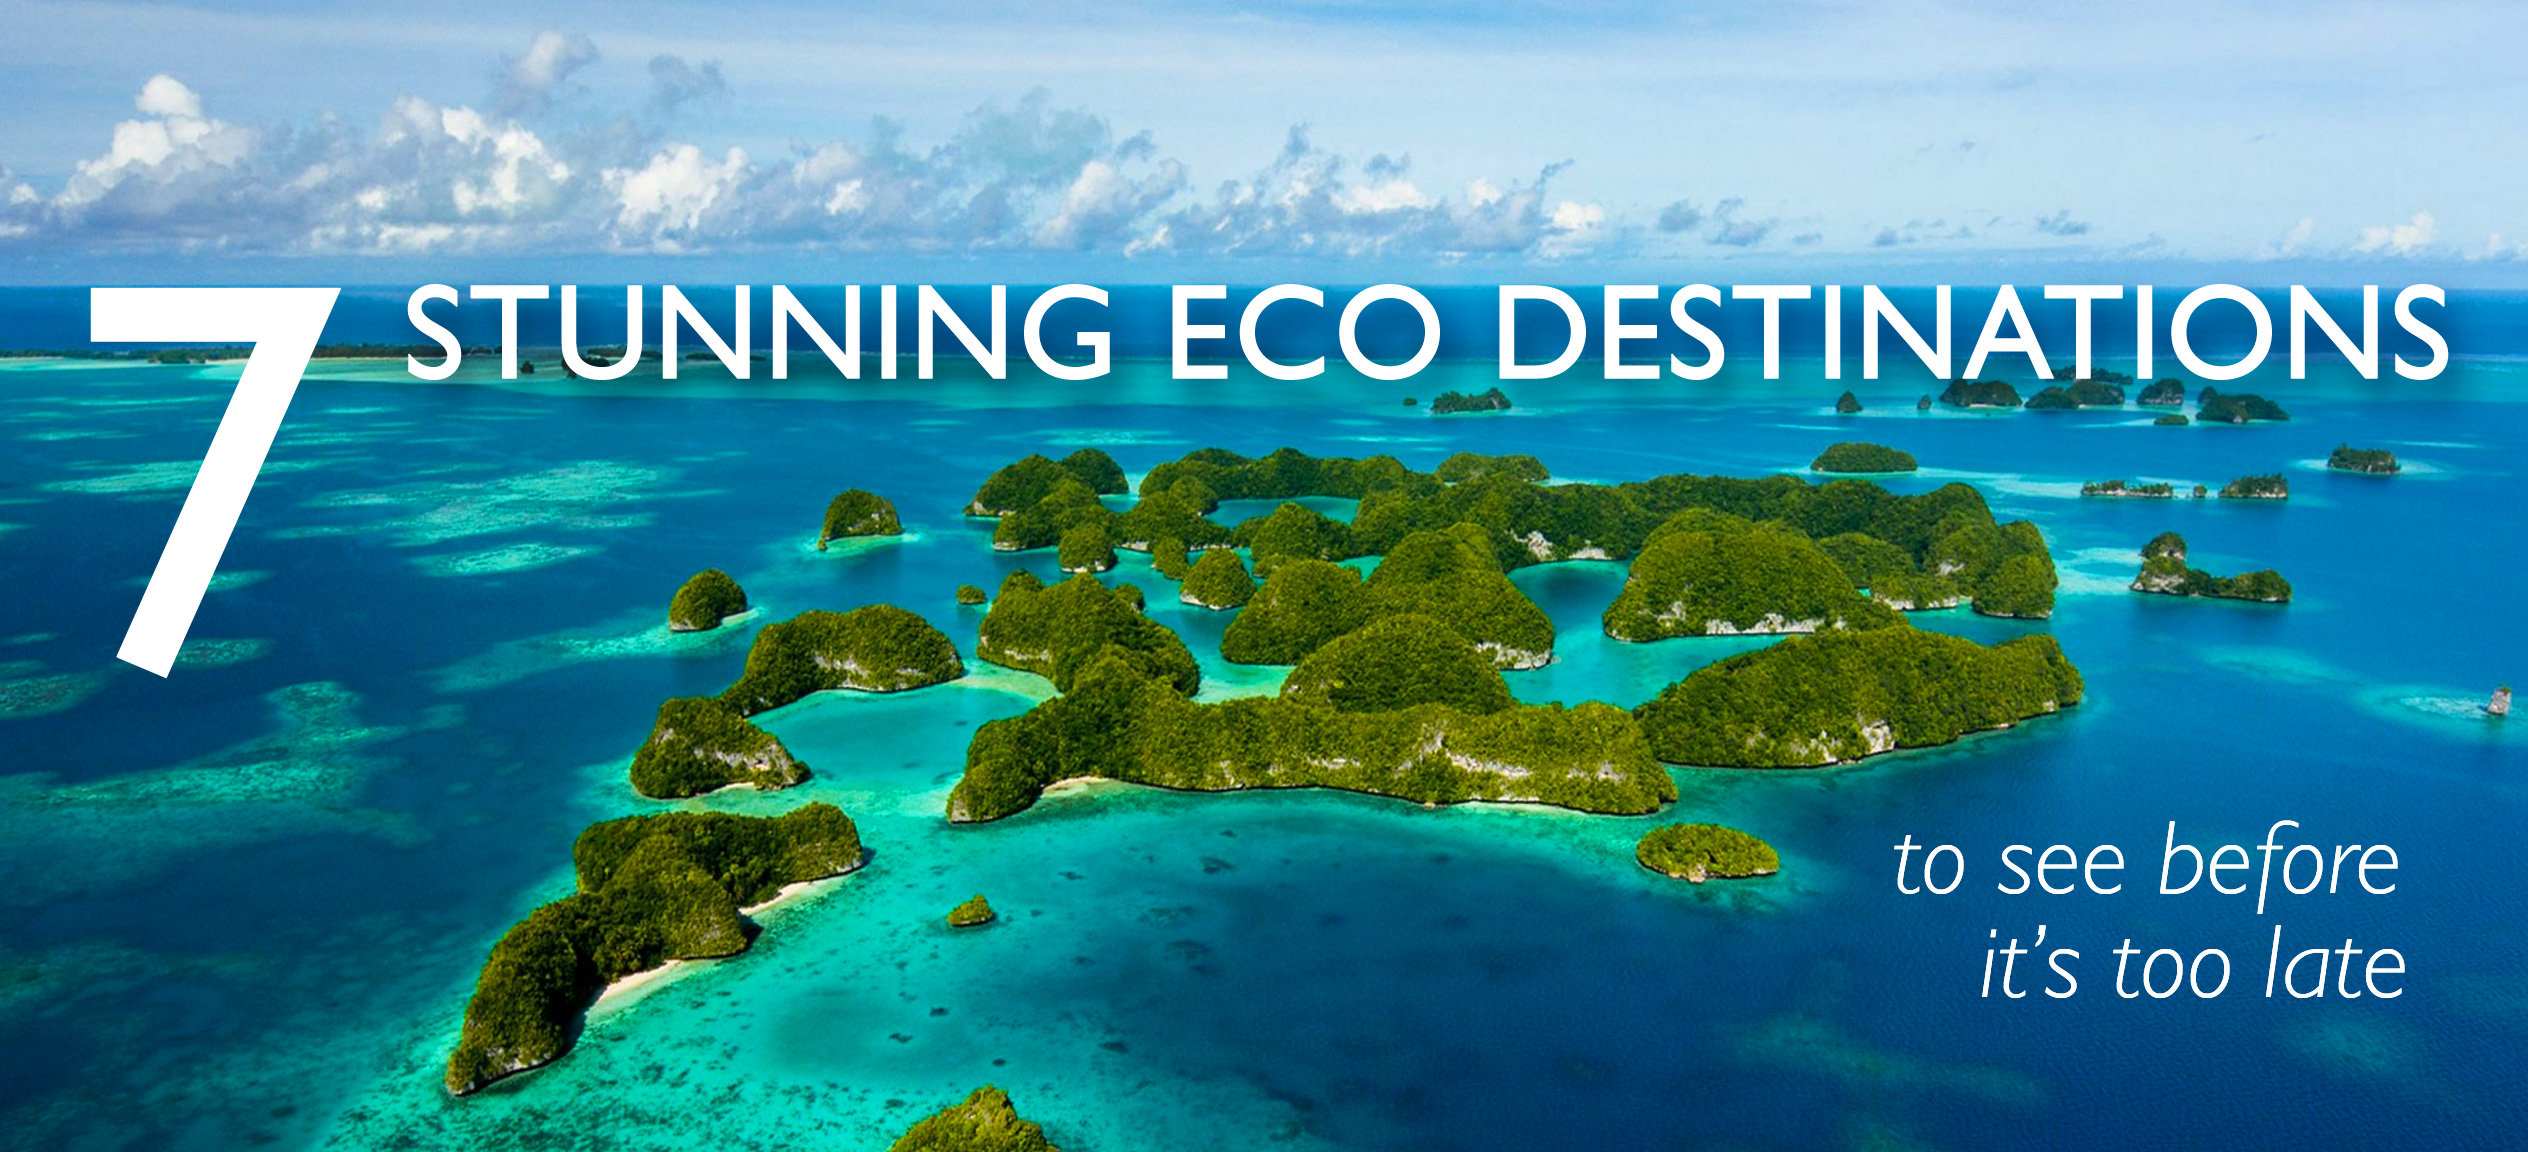 7 stunning eco destinations to see before it's too late